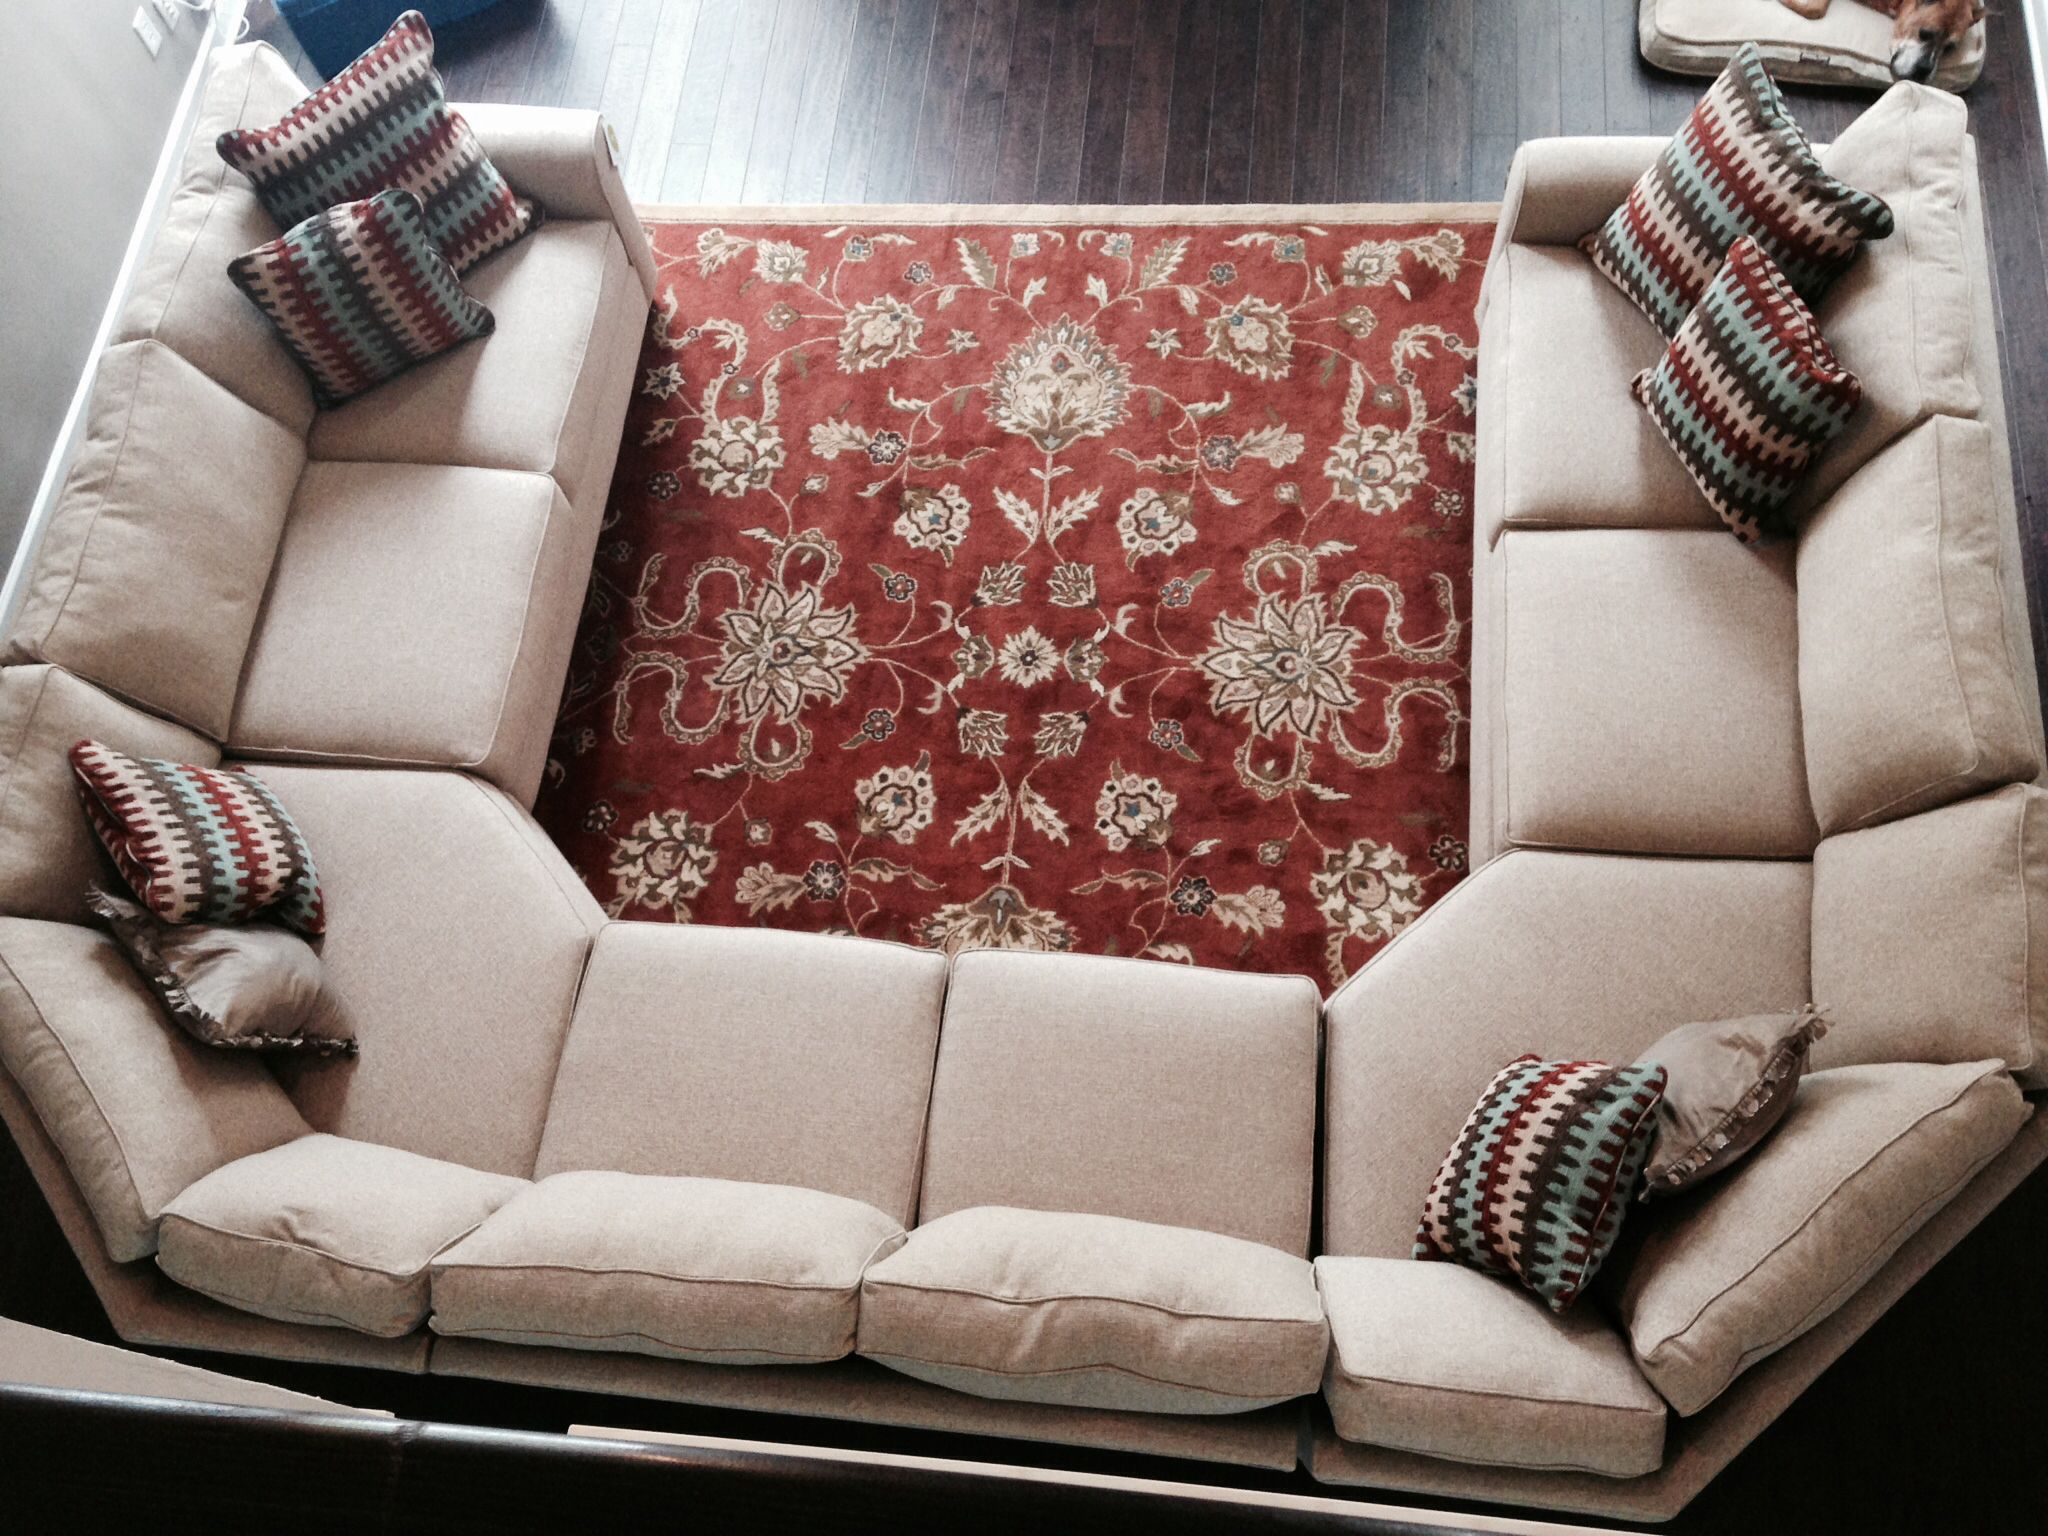 A Great Twist On A U Shape Sectional Via Gallery Furniture.